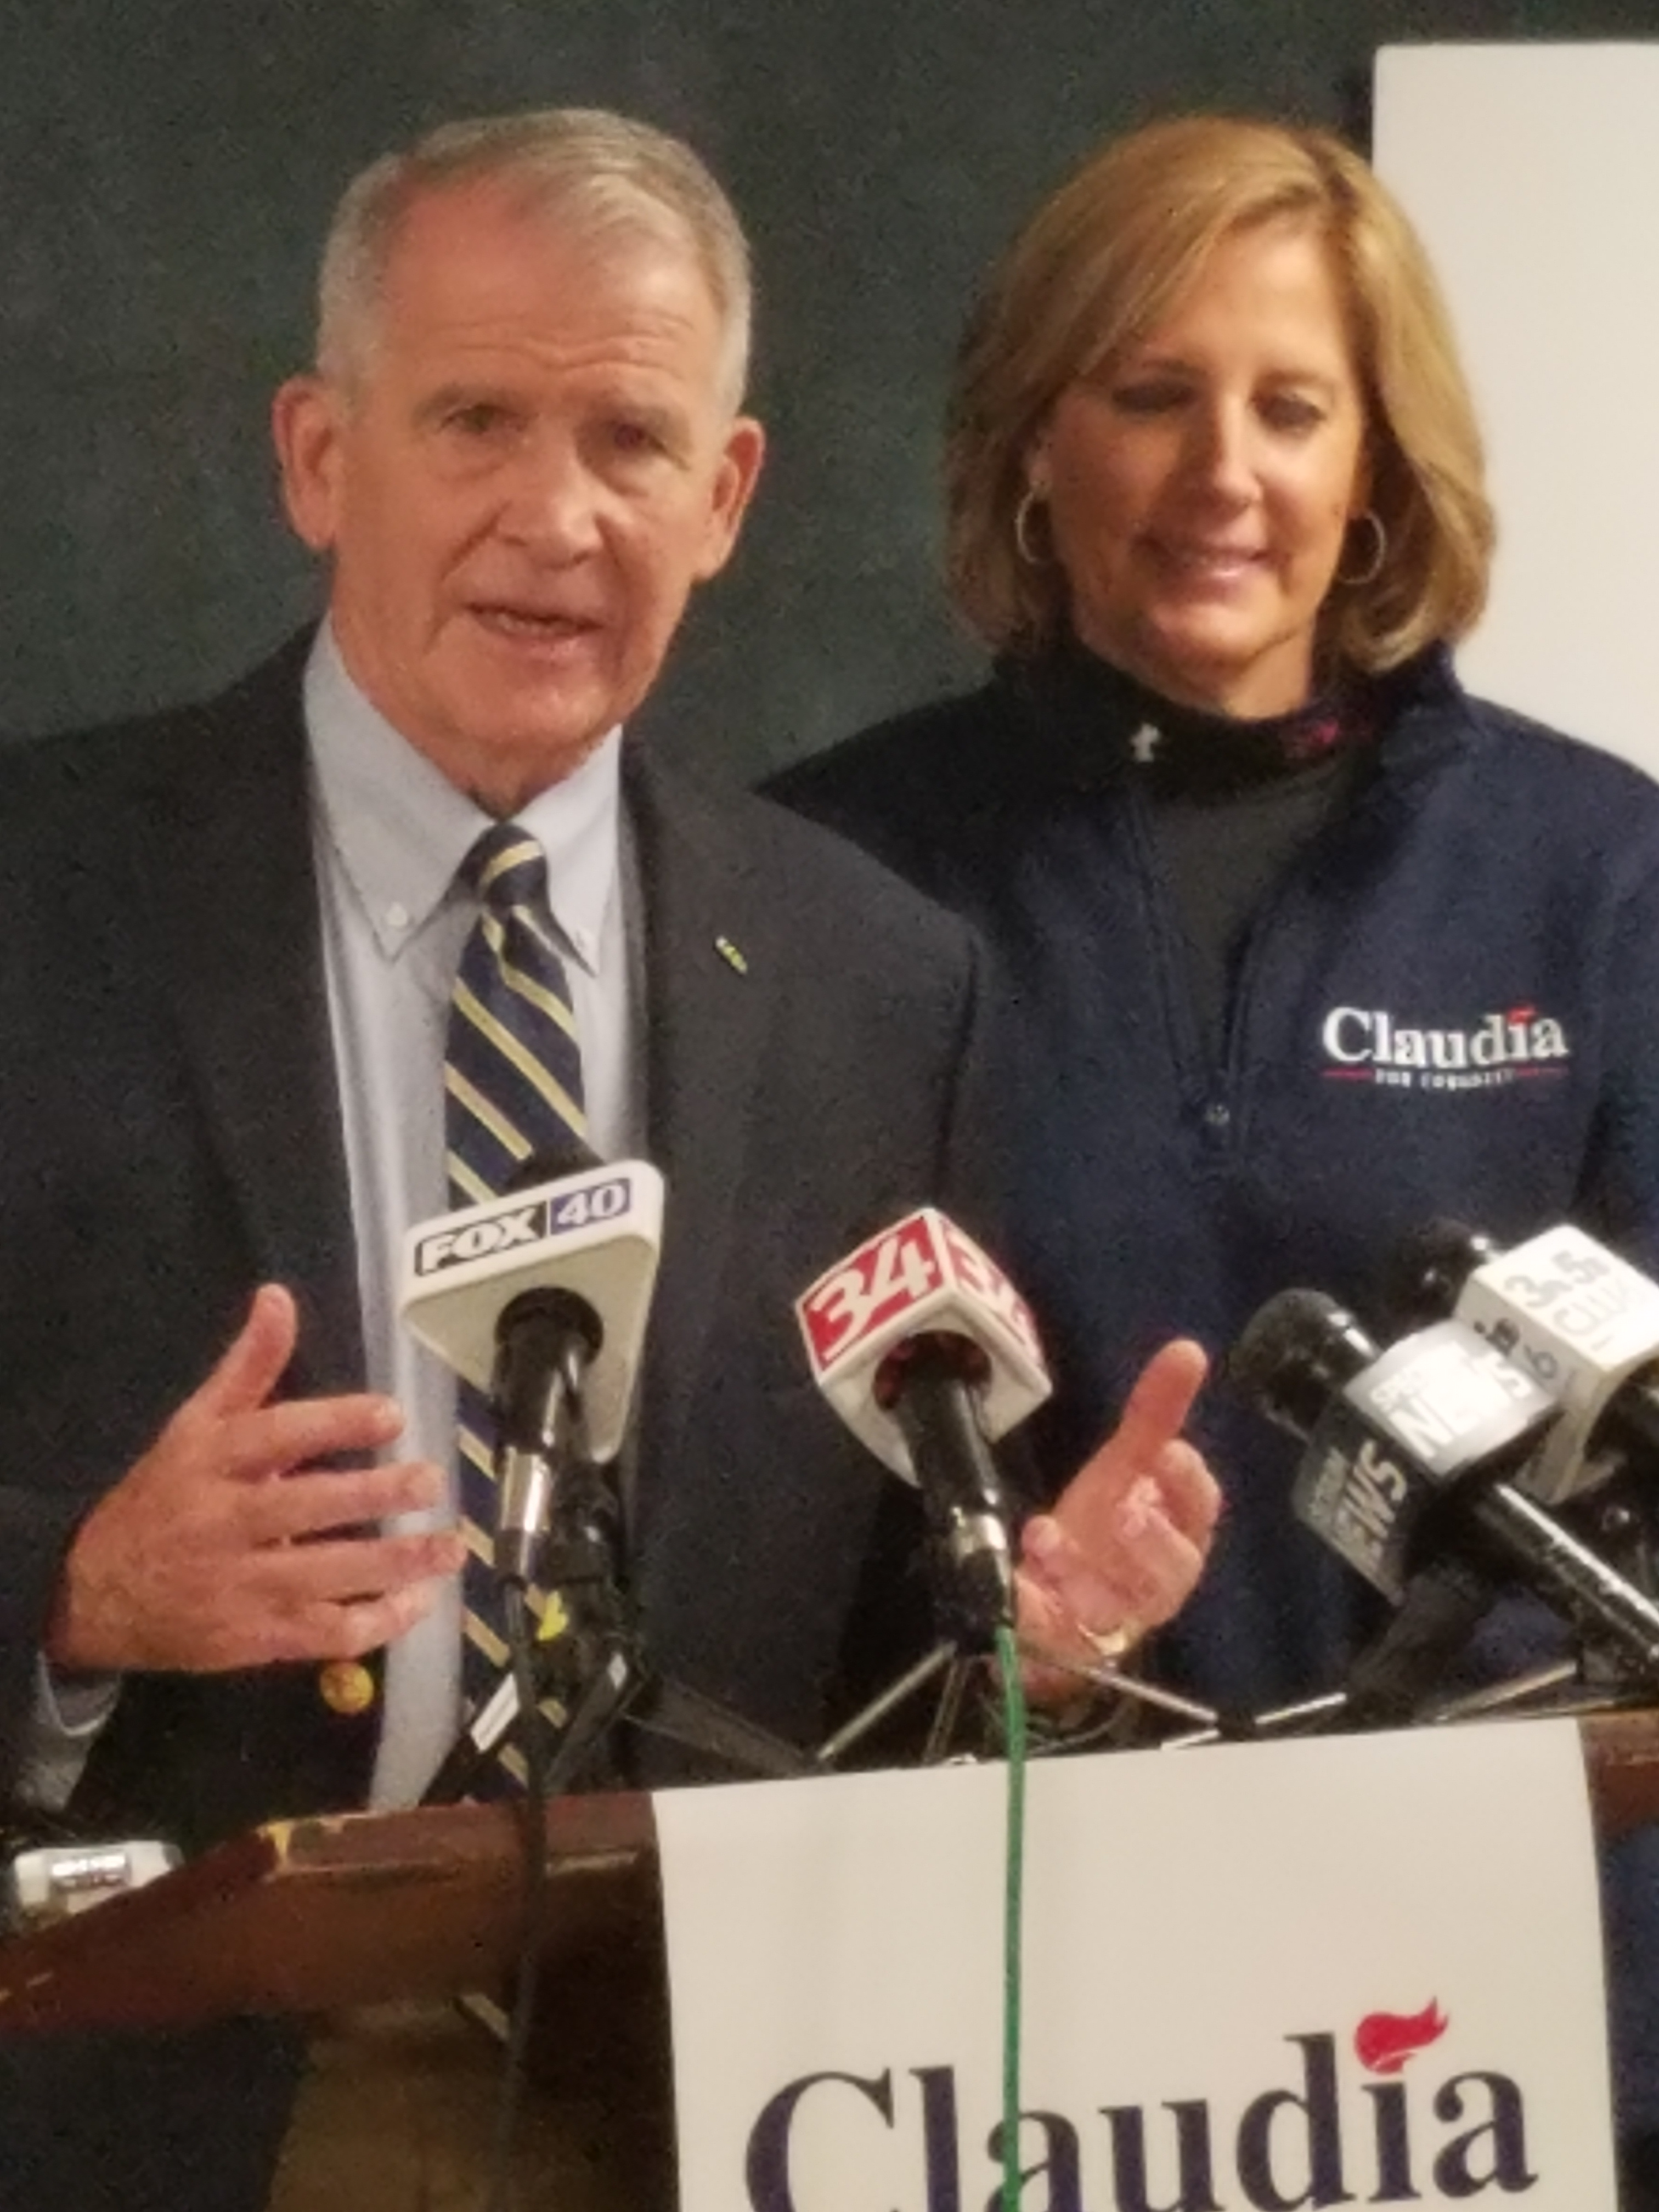 NRA president Col. Oliver North endorses Rep. Claudia Tenney